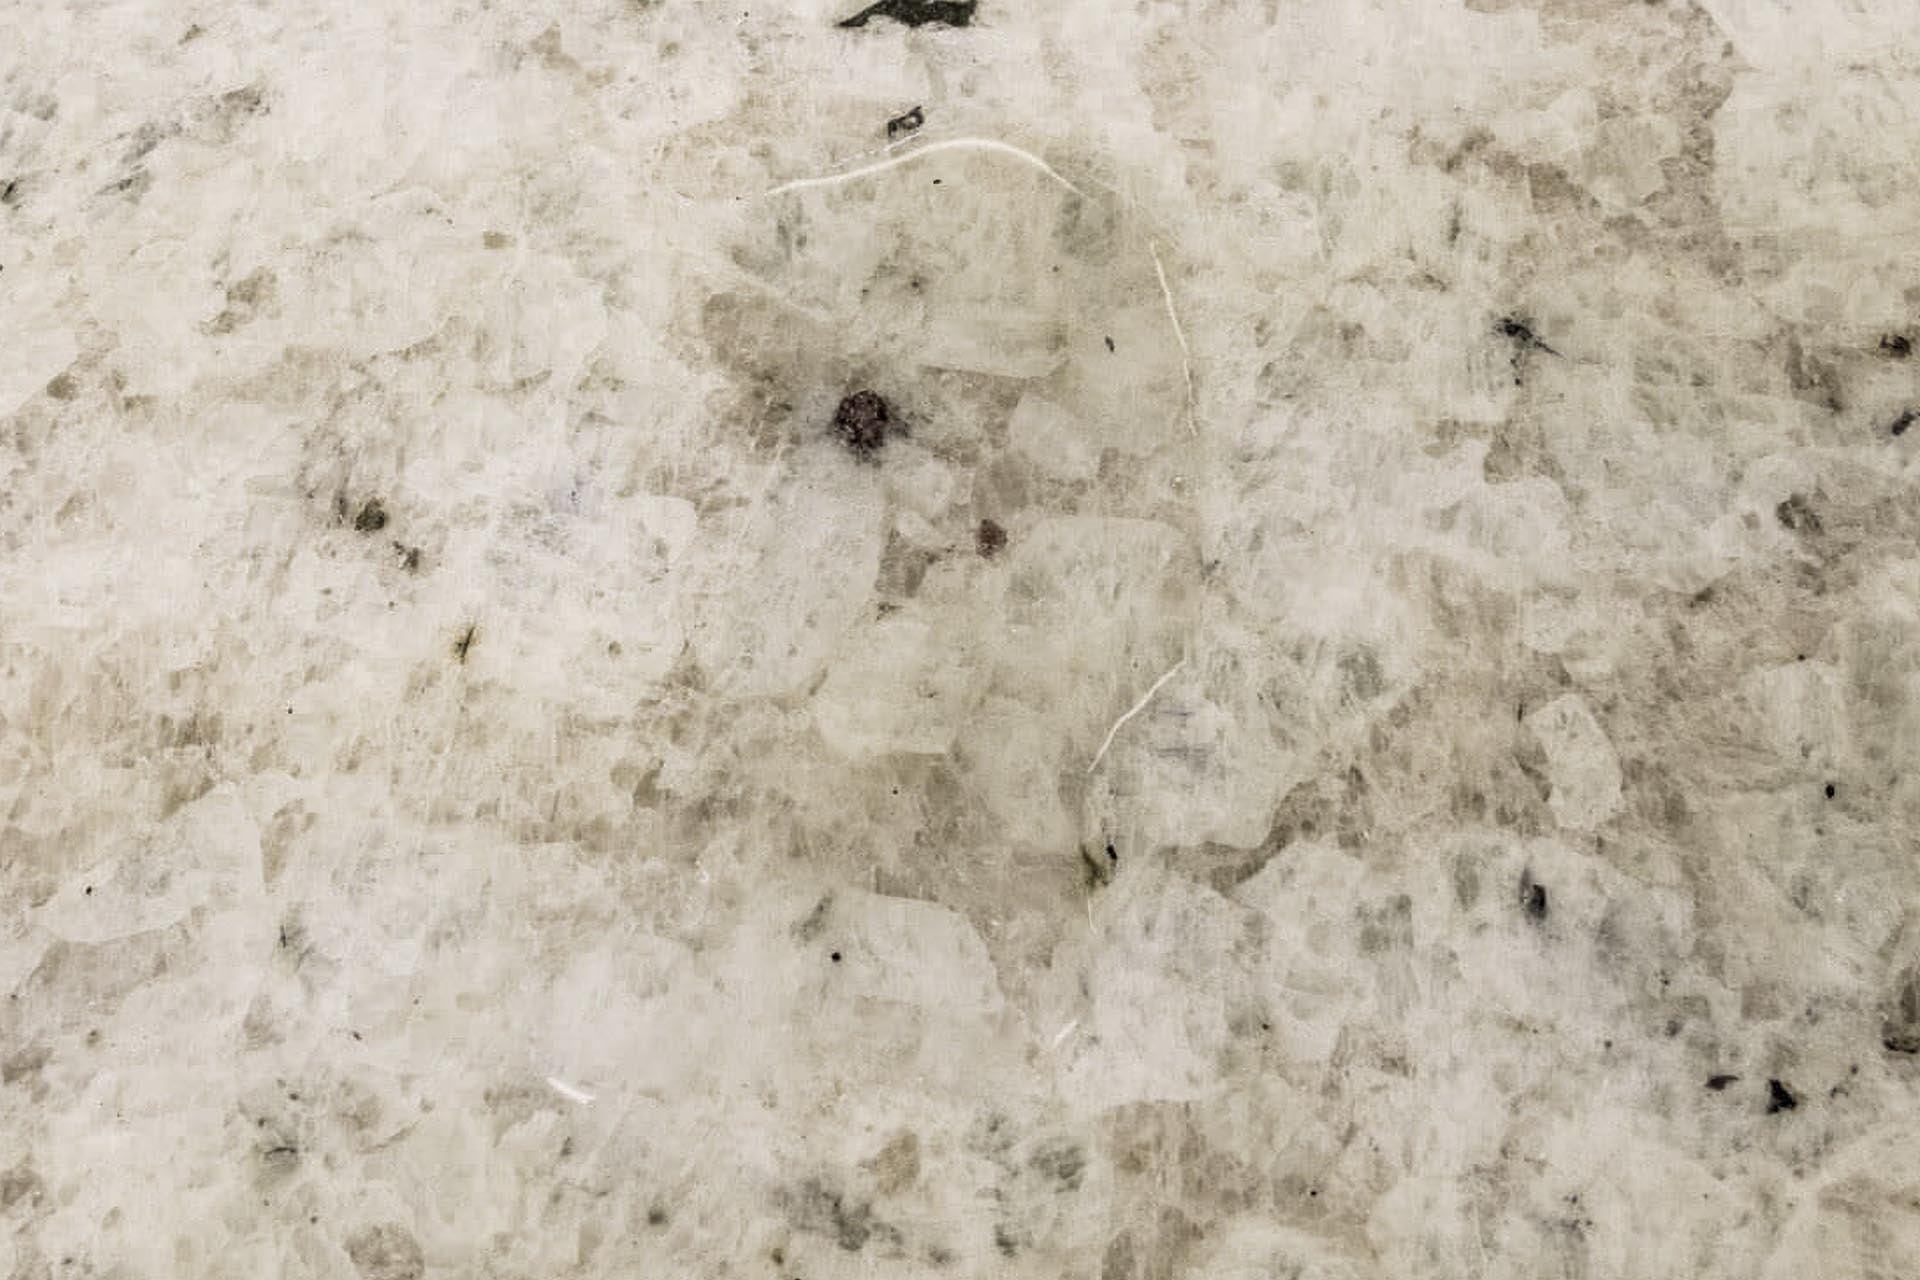 water on colonial white granite worktop sealing